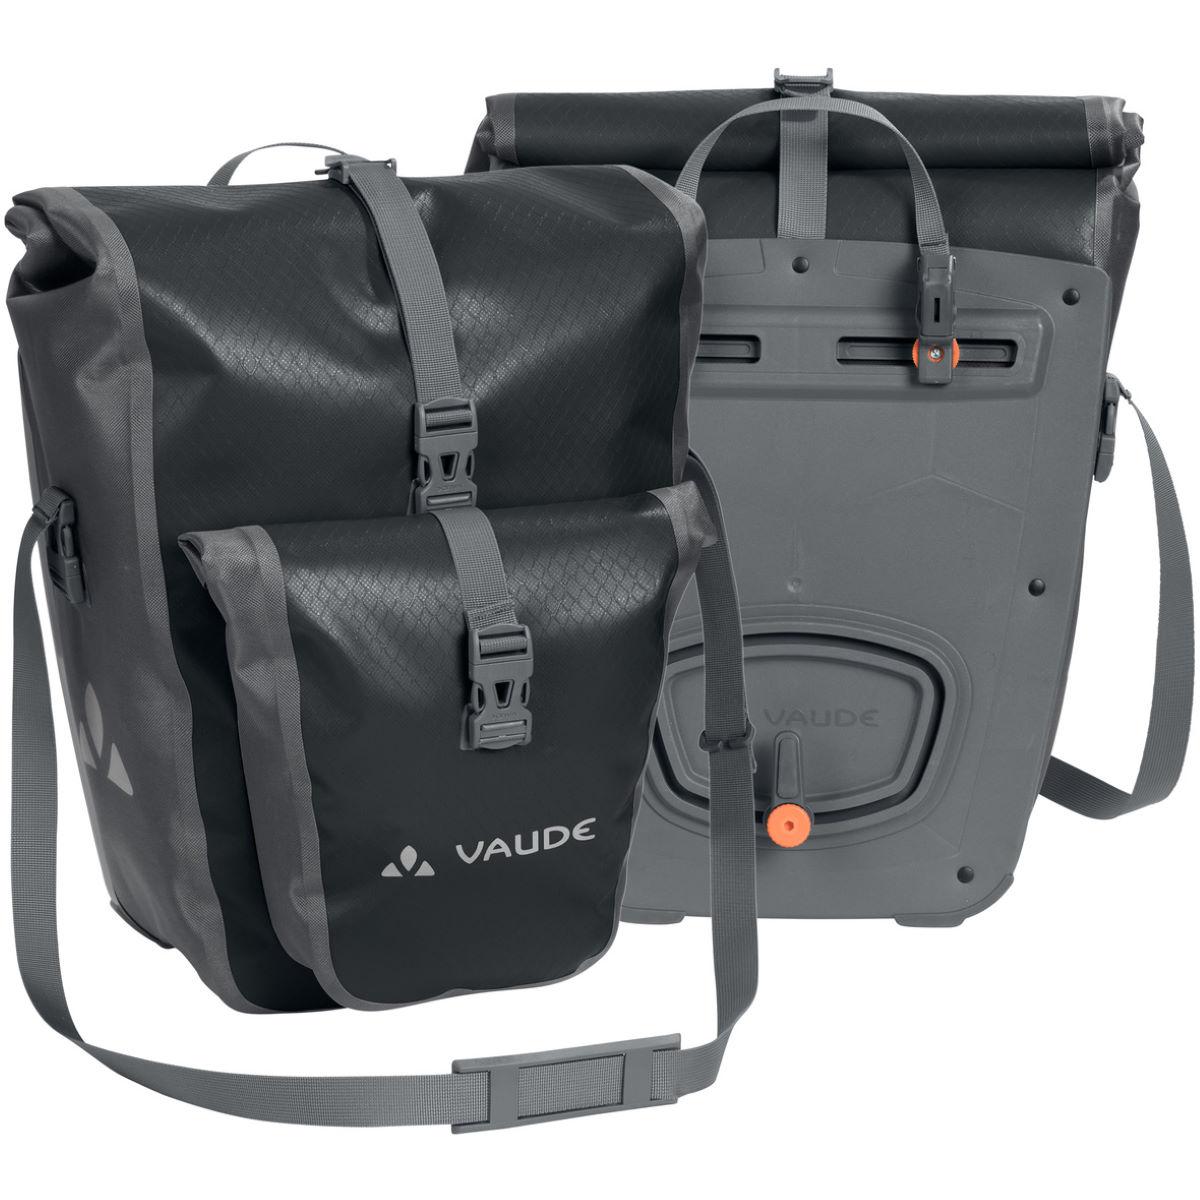 Vaude Aqua Back Plus Waterproof Rear Pannier Bags Pair - Alforjas